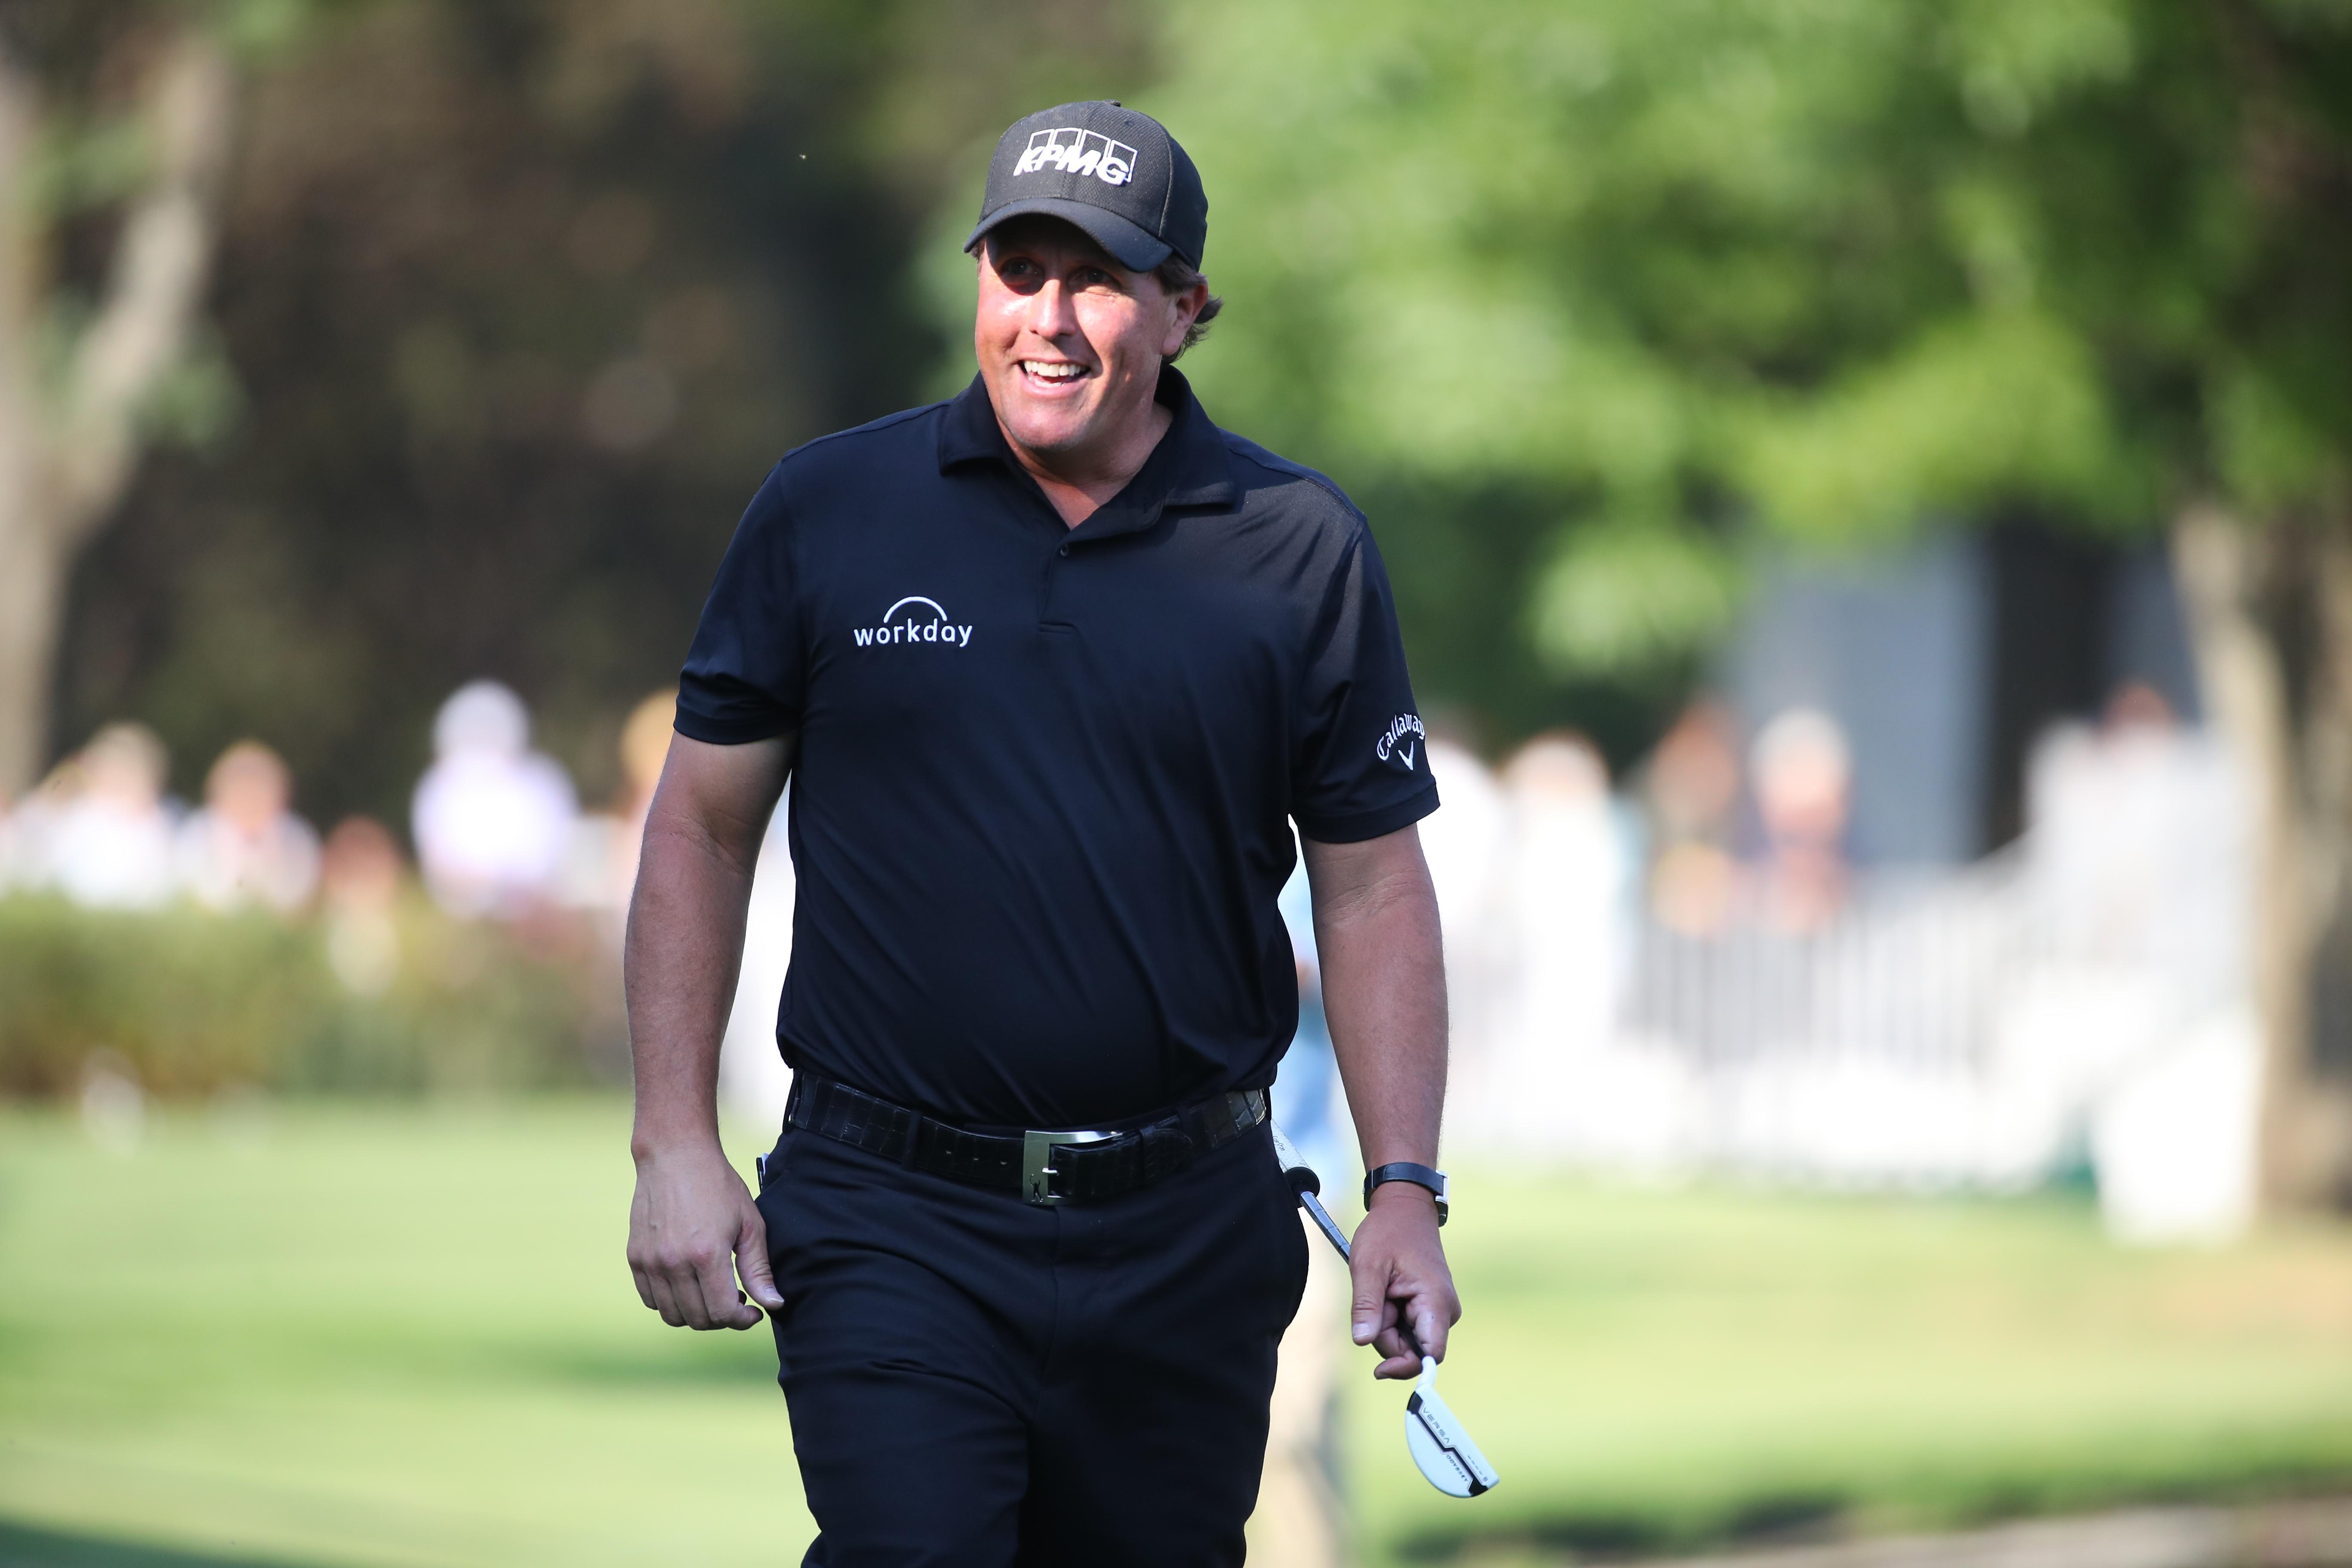 Phil Mickelson Defeats Justin Thomas In Playoff To Win Wgc Mexico